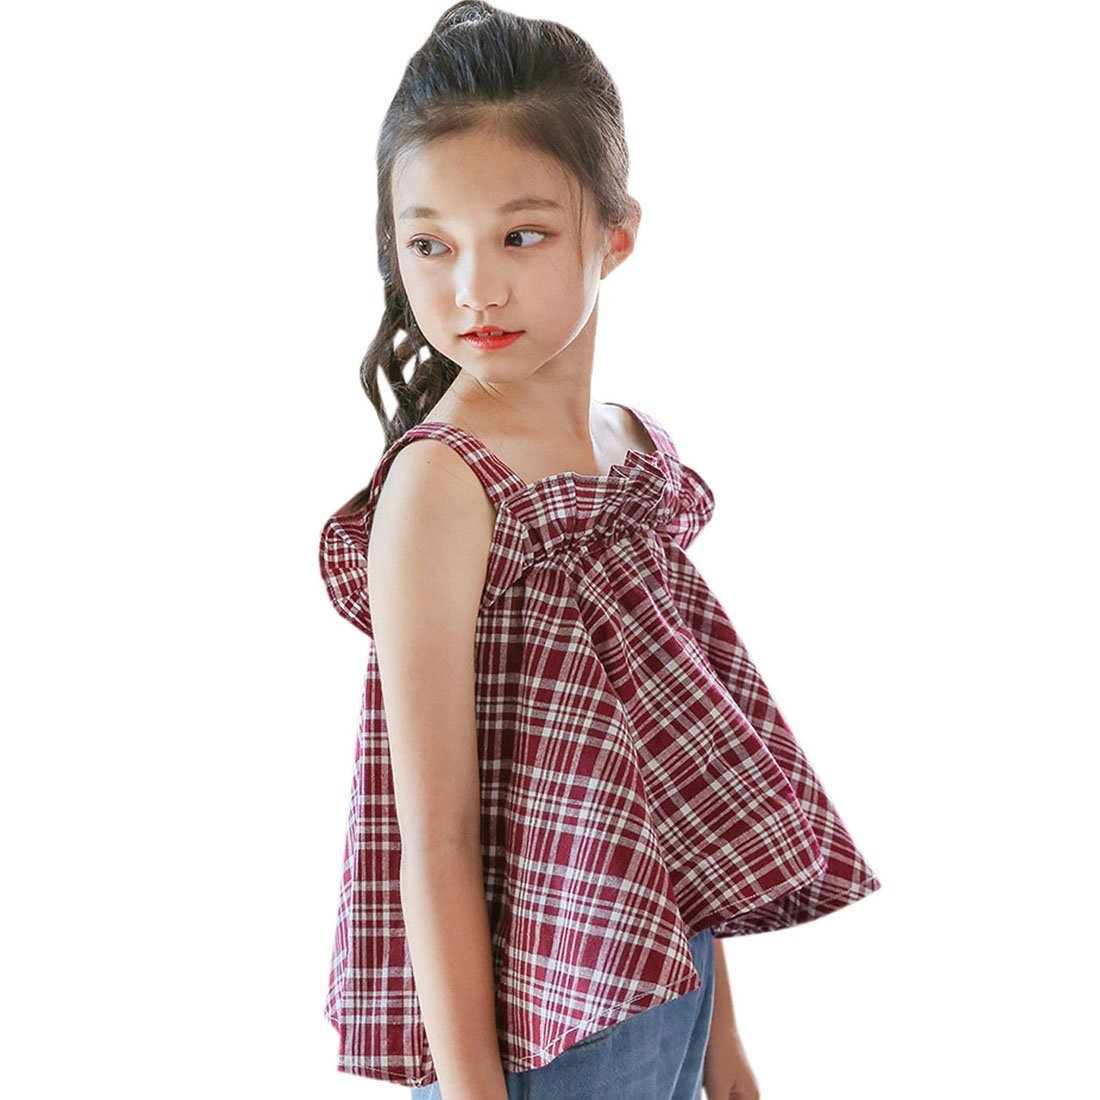 ACVIP Girls Strappy Ruffled Chest A-line Plaid Camisole Top